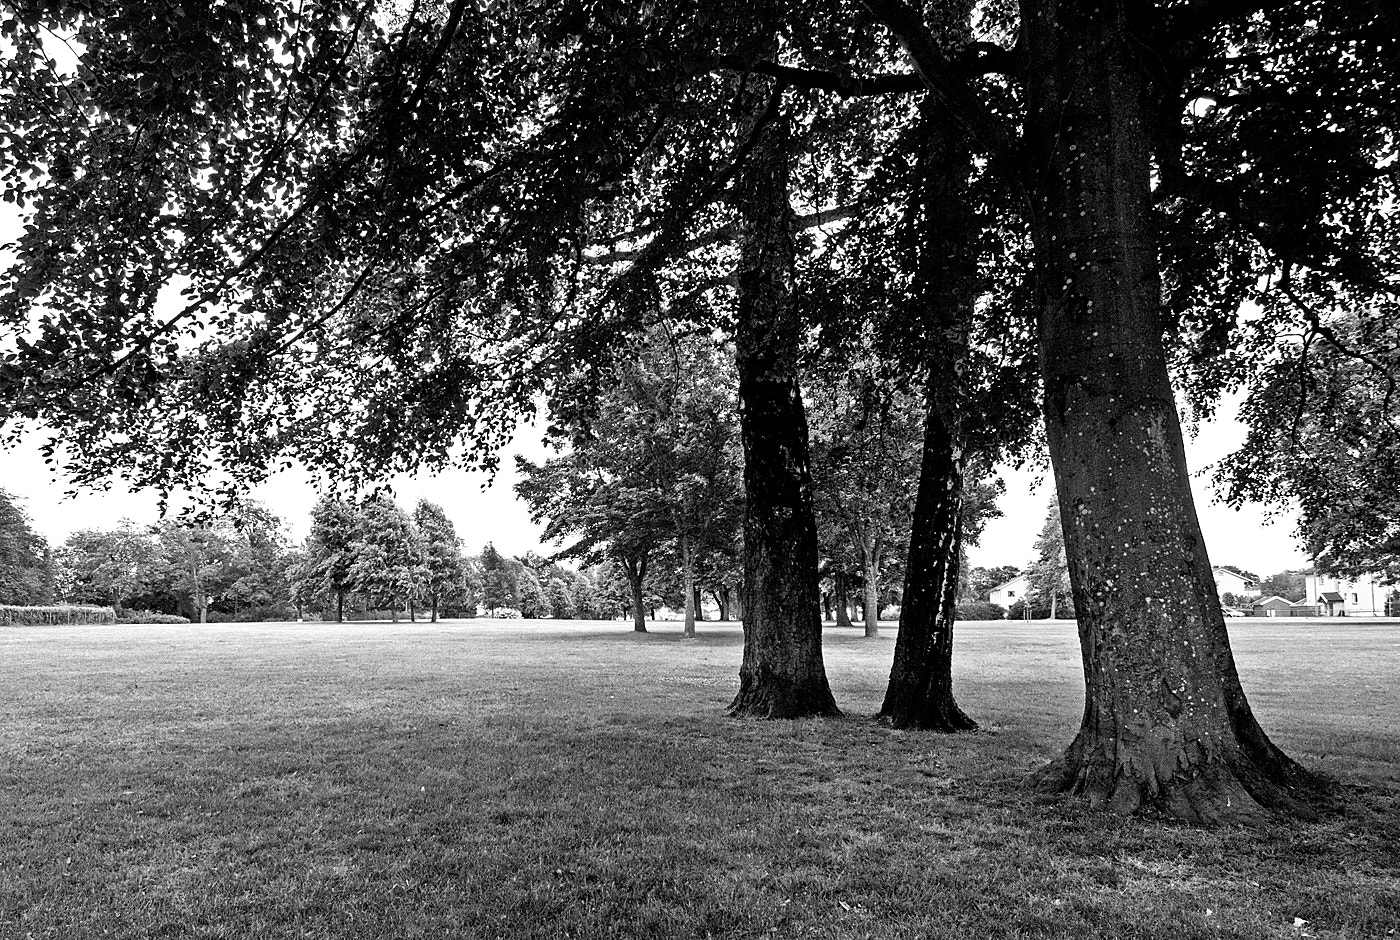 Photograph Black and white in the park by Ragnar Gjemmestad on 500px